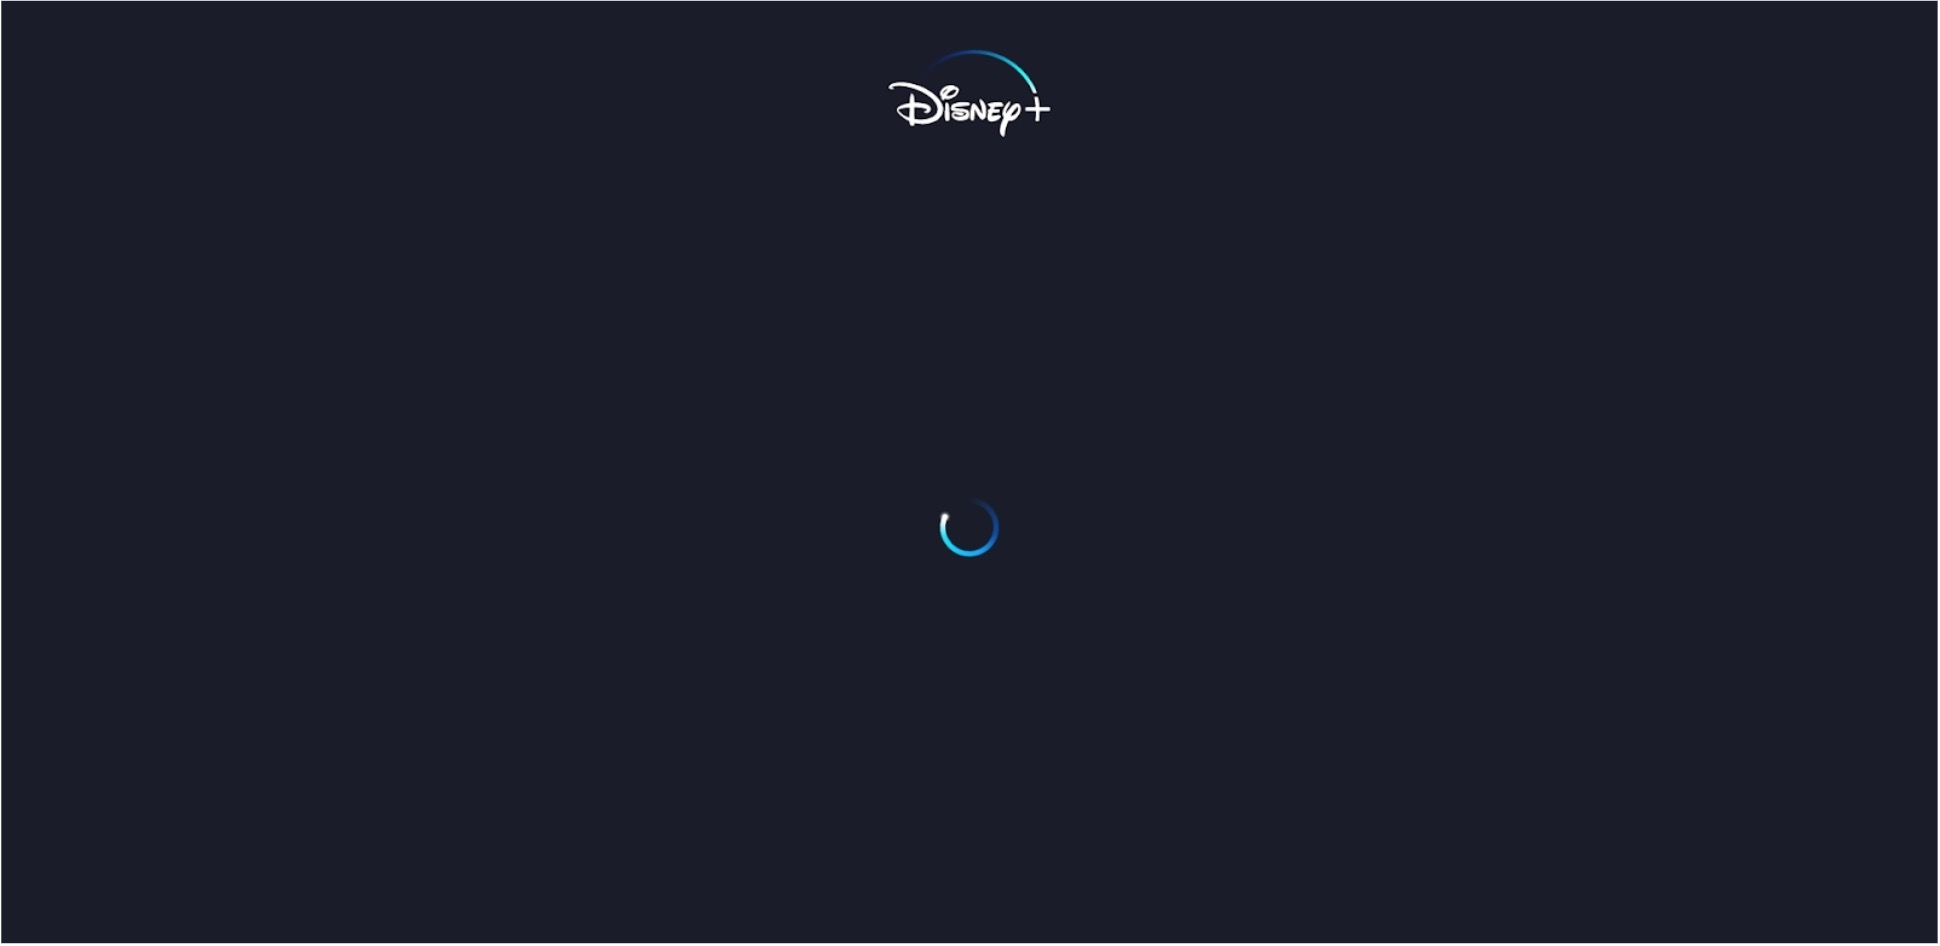 Screenshot of Norton Secure VPN unable to unblock Disney+ with infinite loading on a blank screen